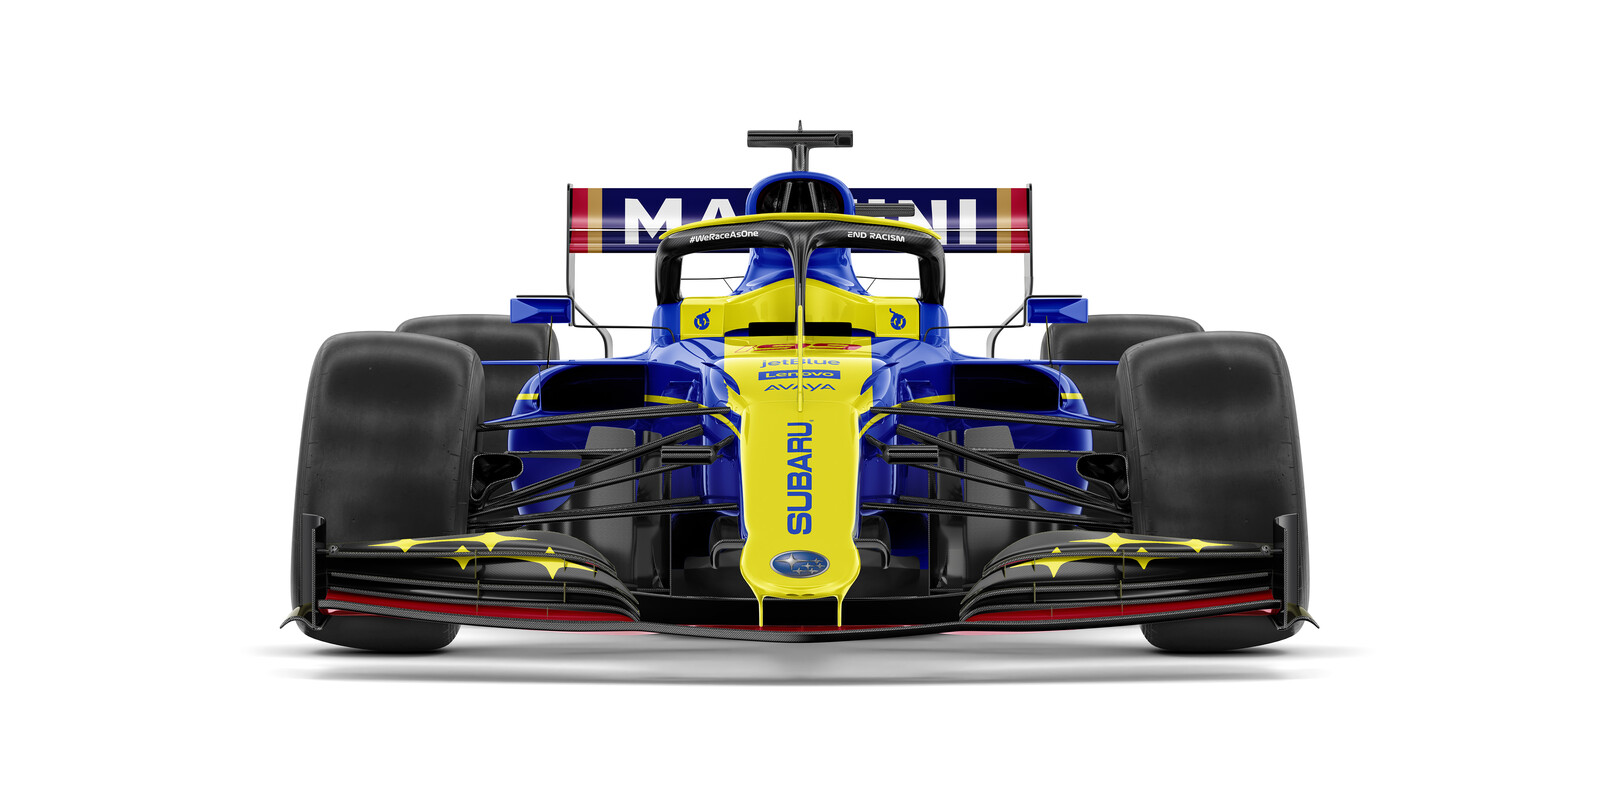 F1 Livery Concepts